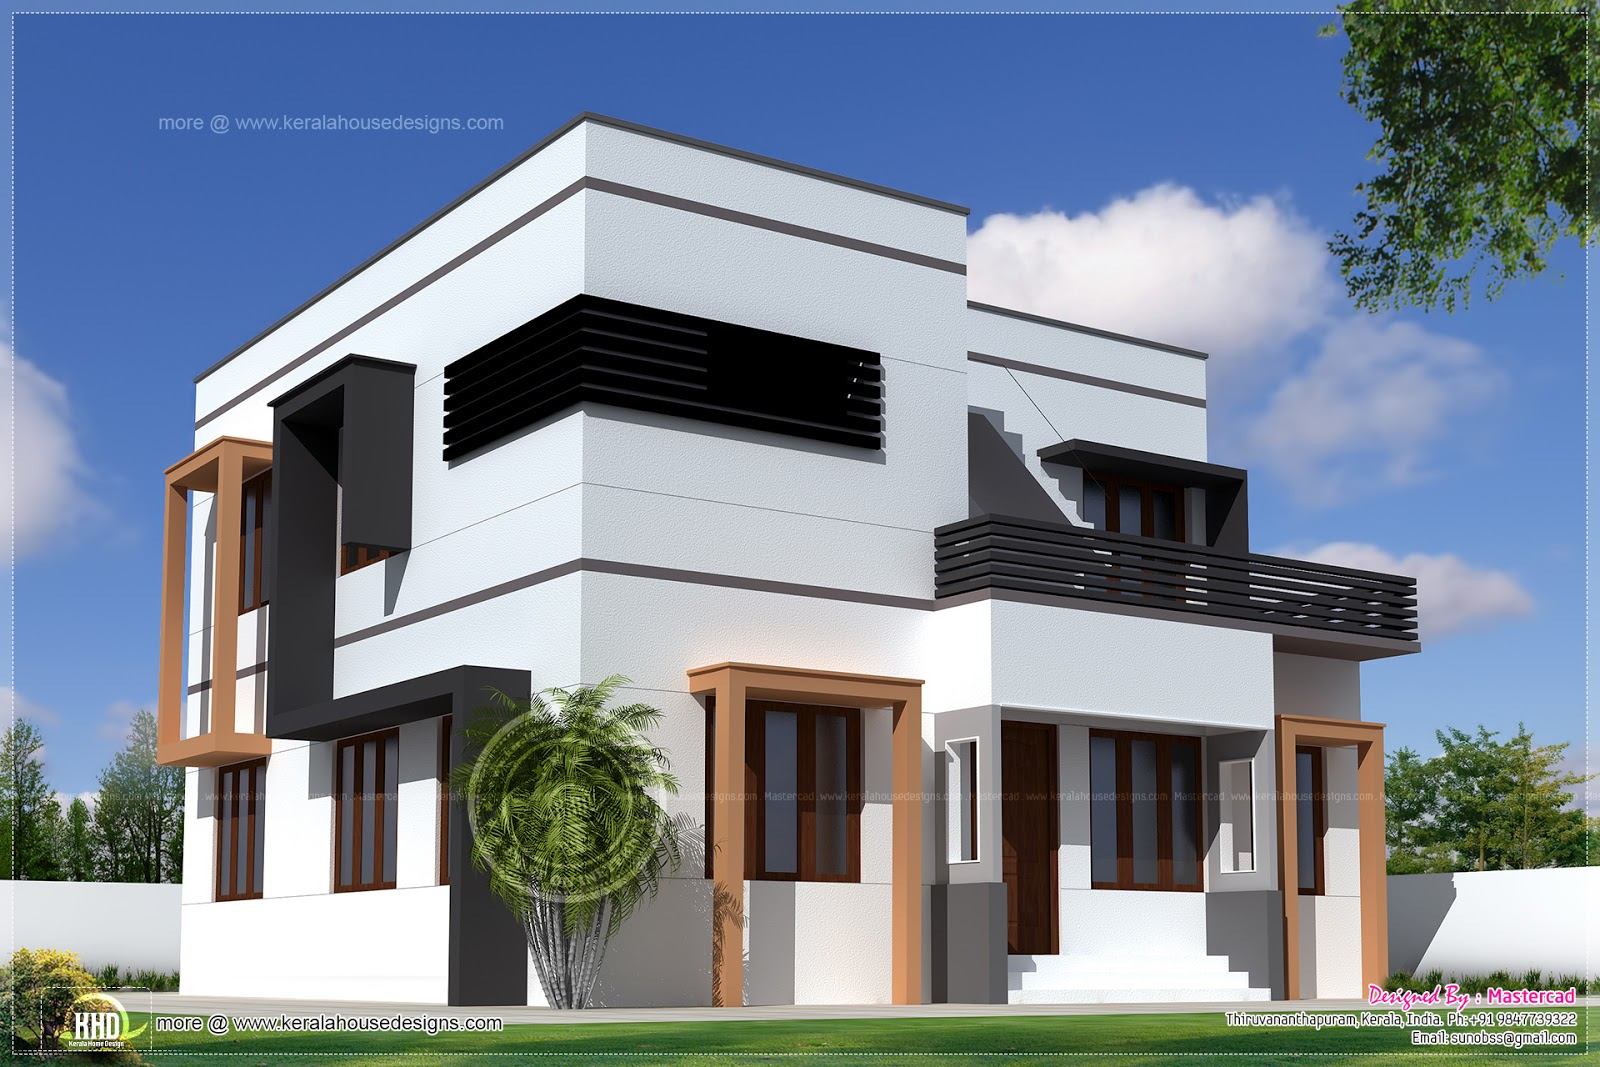 Simple Exterior Design Of House In India ultra modern home designs